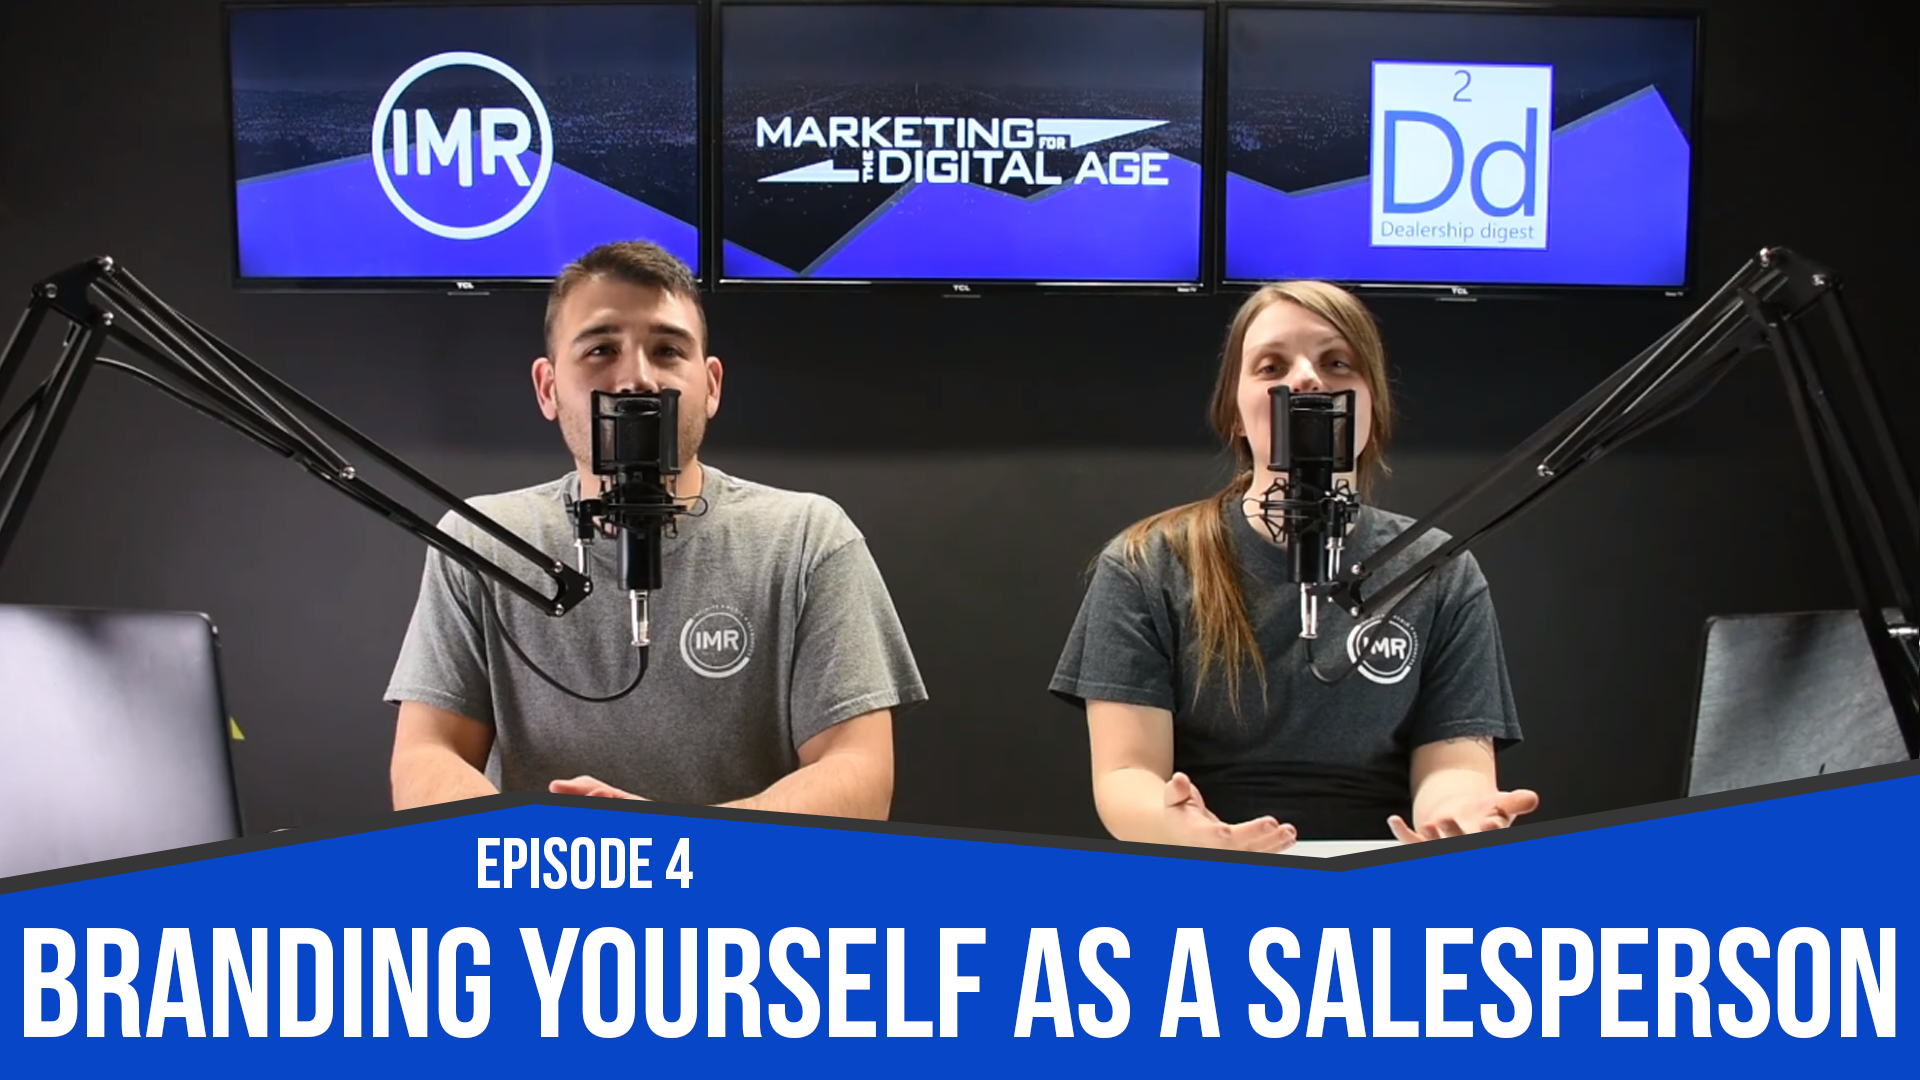 dealership digest episode 4 branding yourself as a salesperson